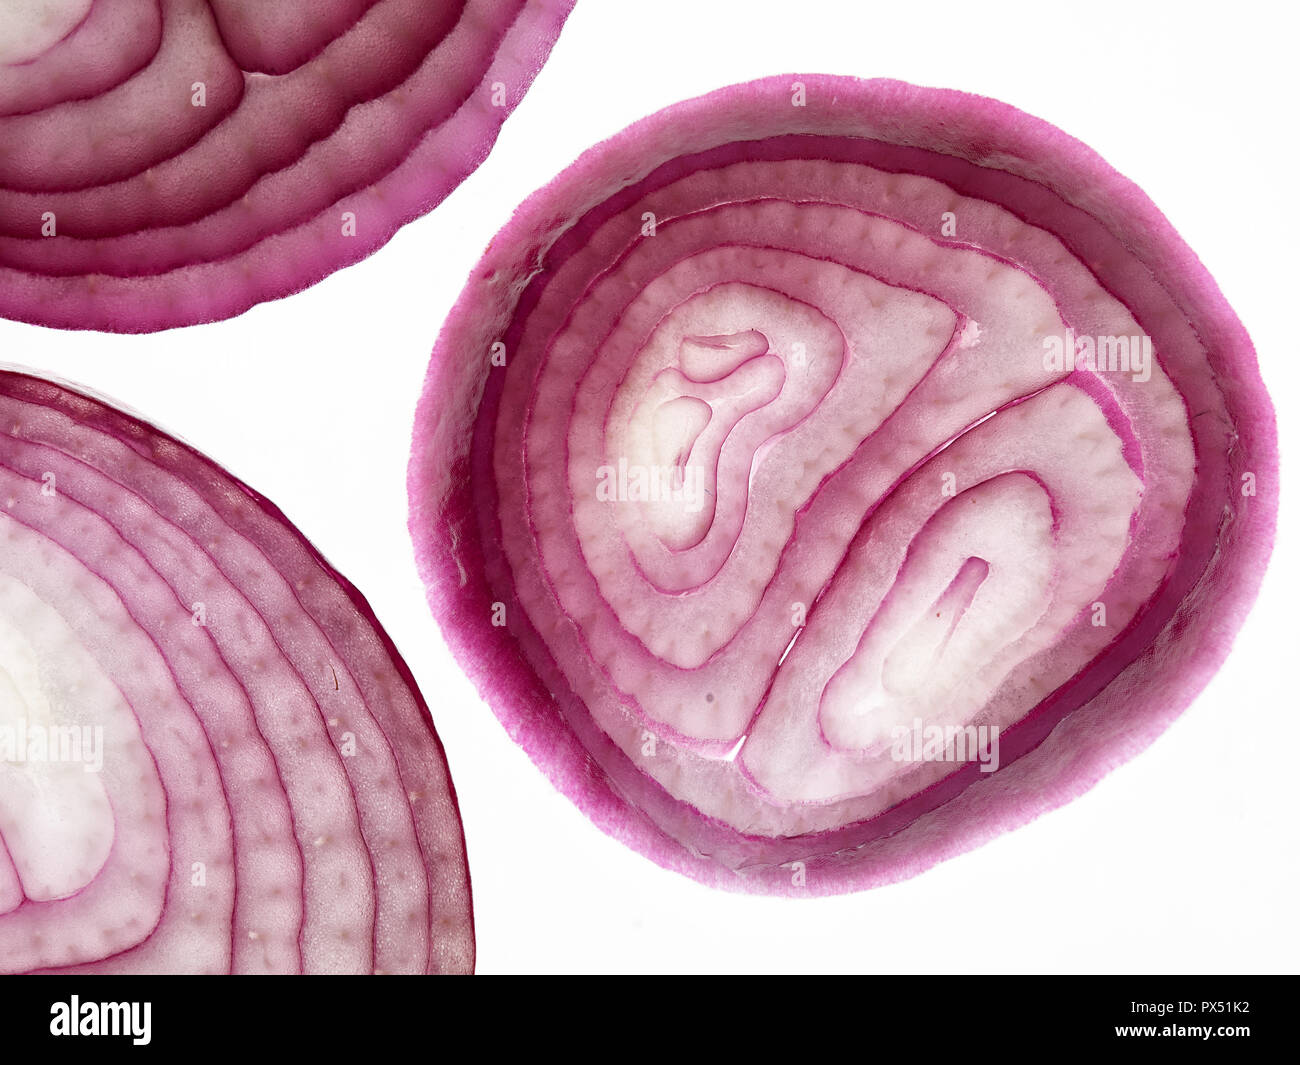 Red onion close-up abstract food photograph - Stock Image